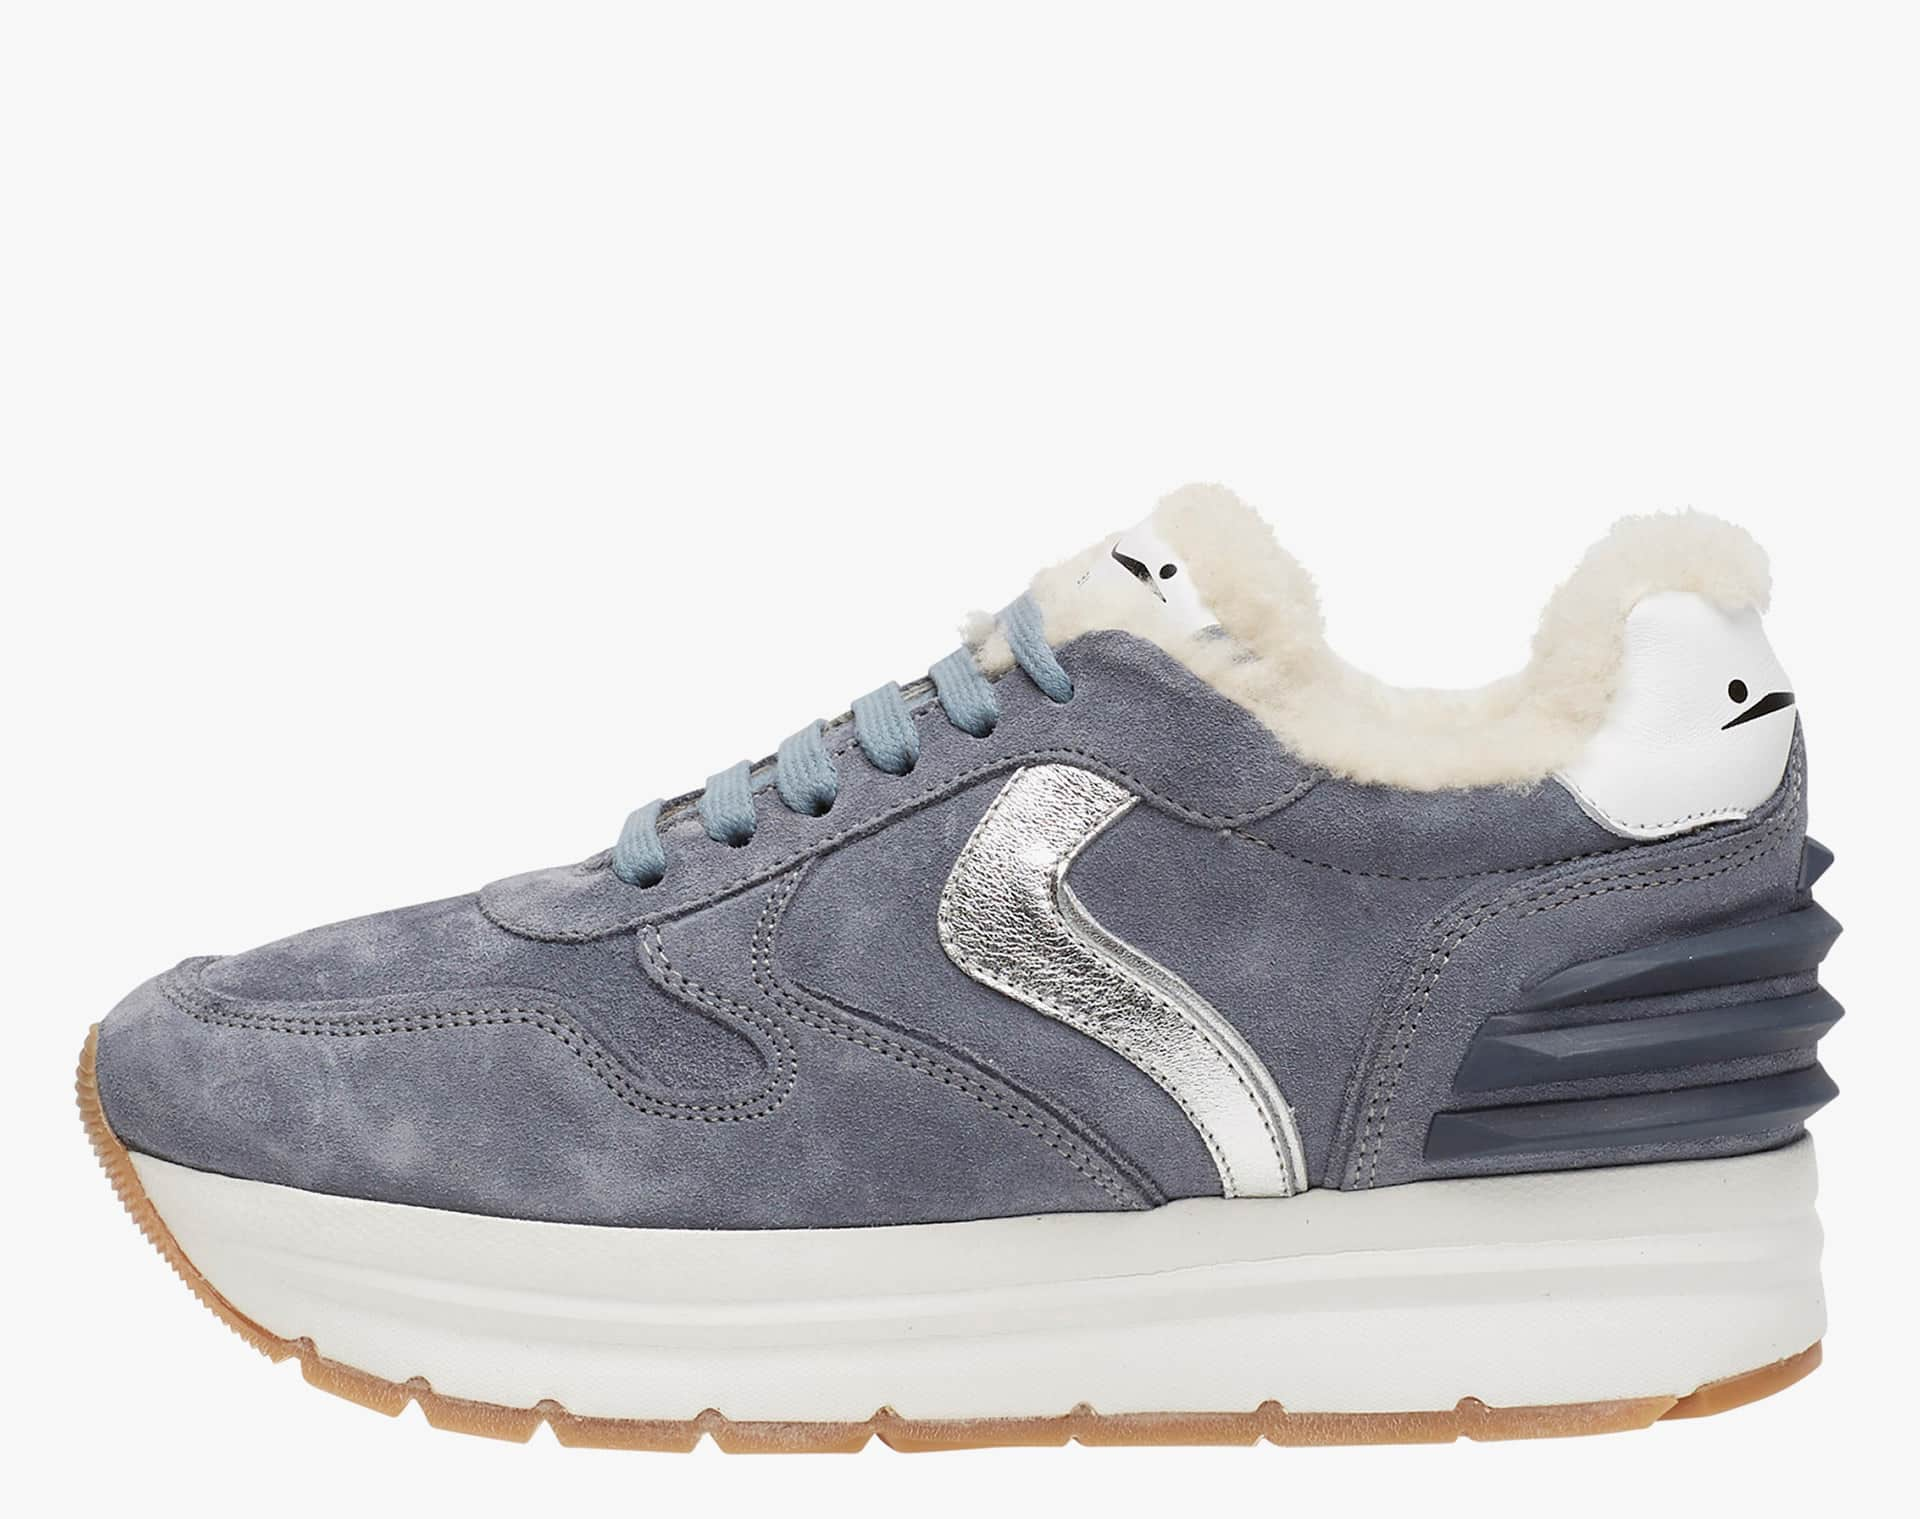 MAY POWER FUR - Sneakers in leather and laminate - LIGHT BLUE-SILVER